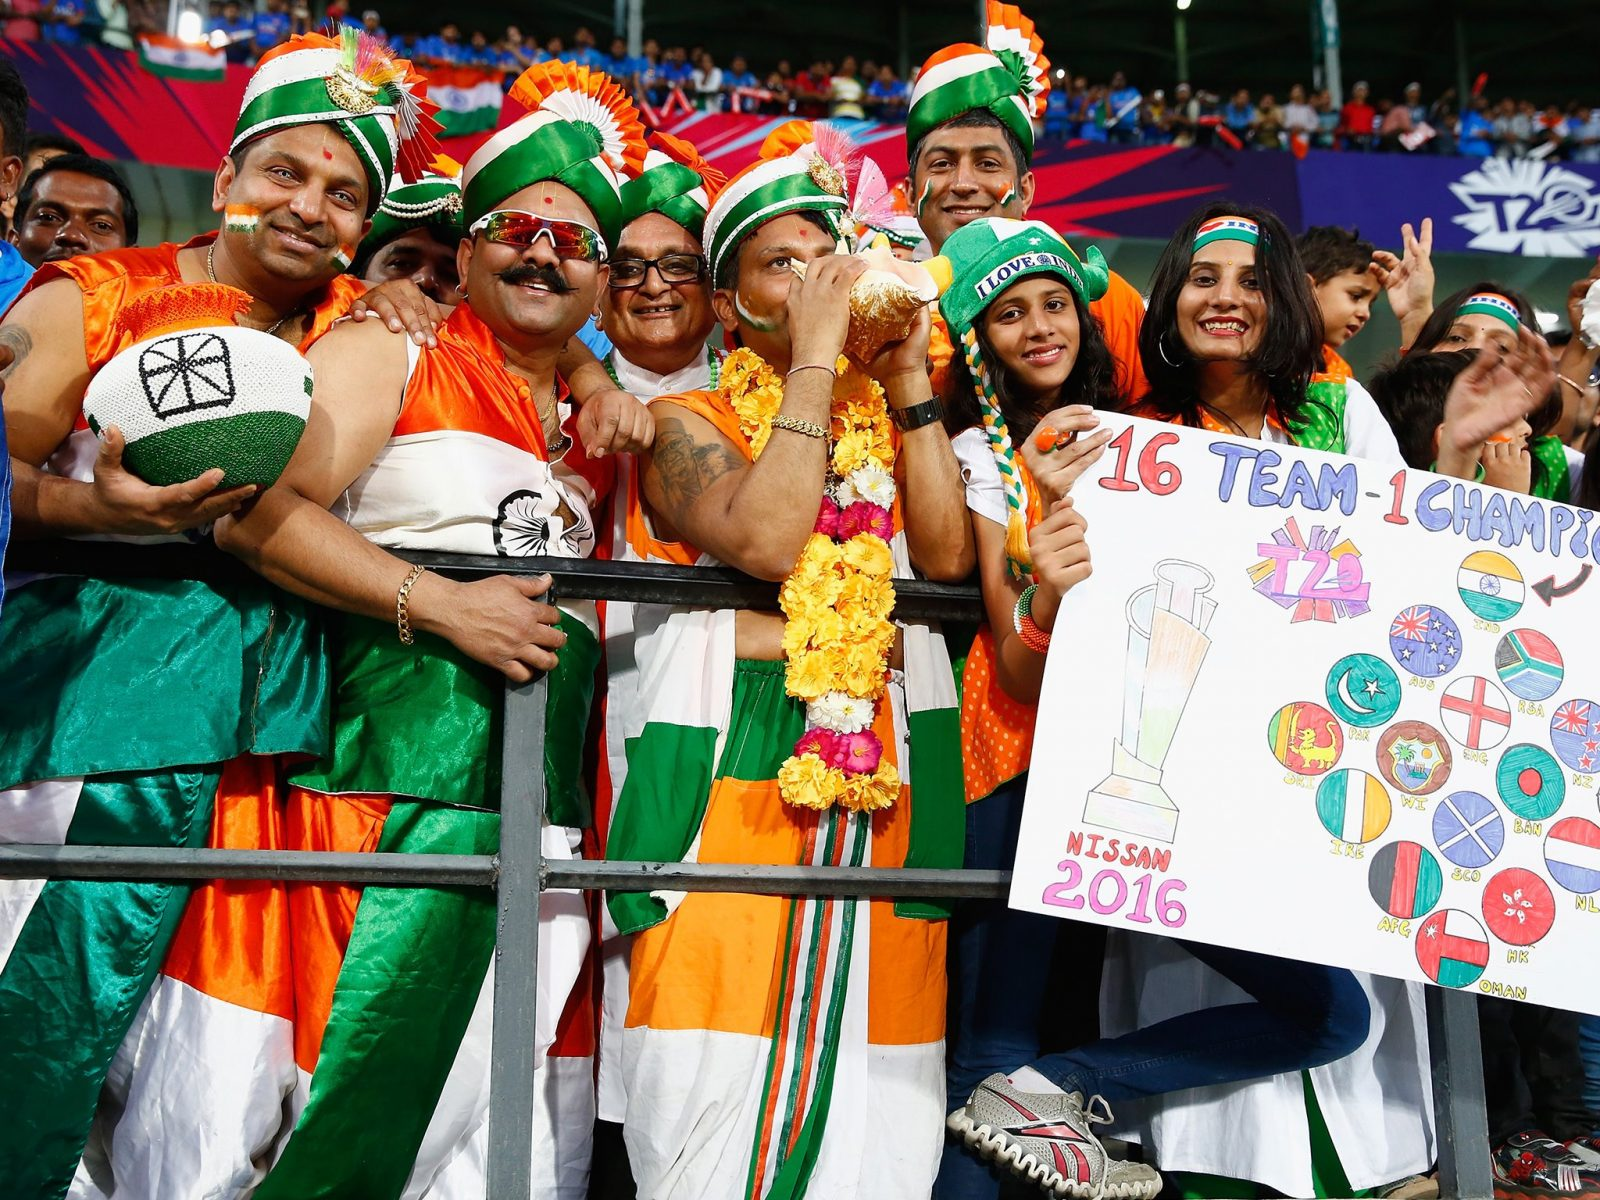 ICC Men's T20 World Cup - India v South Africa, Perth, Western Australia